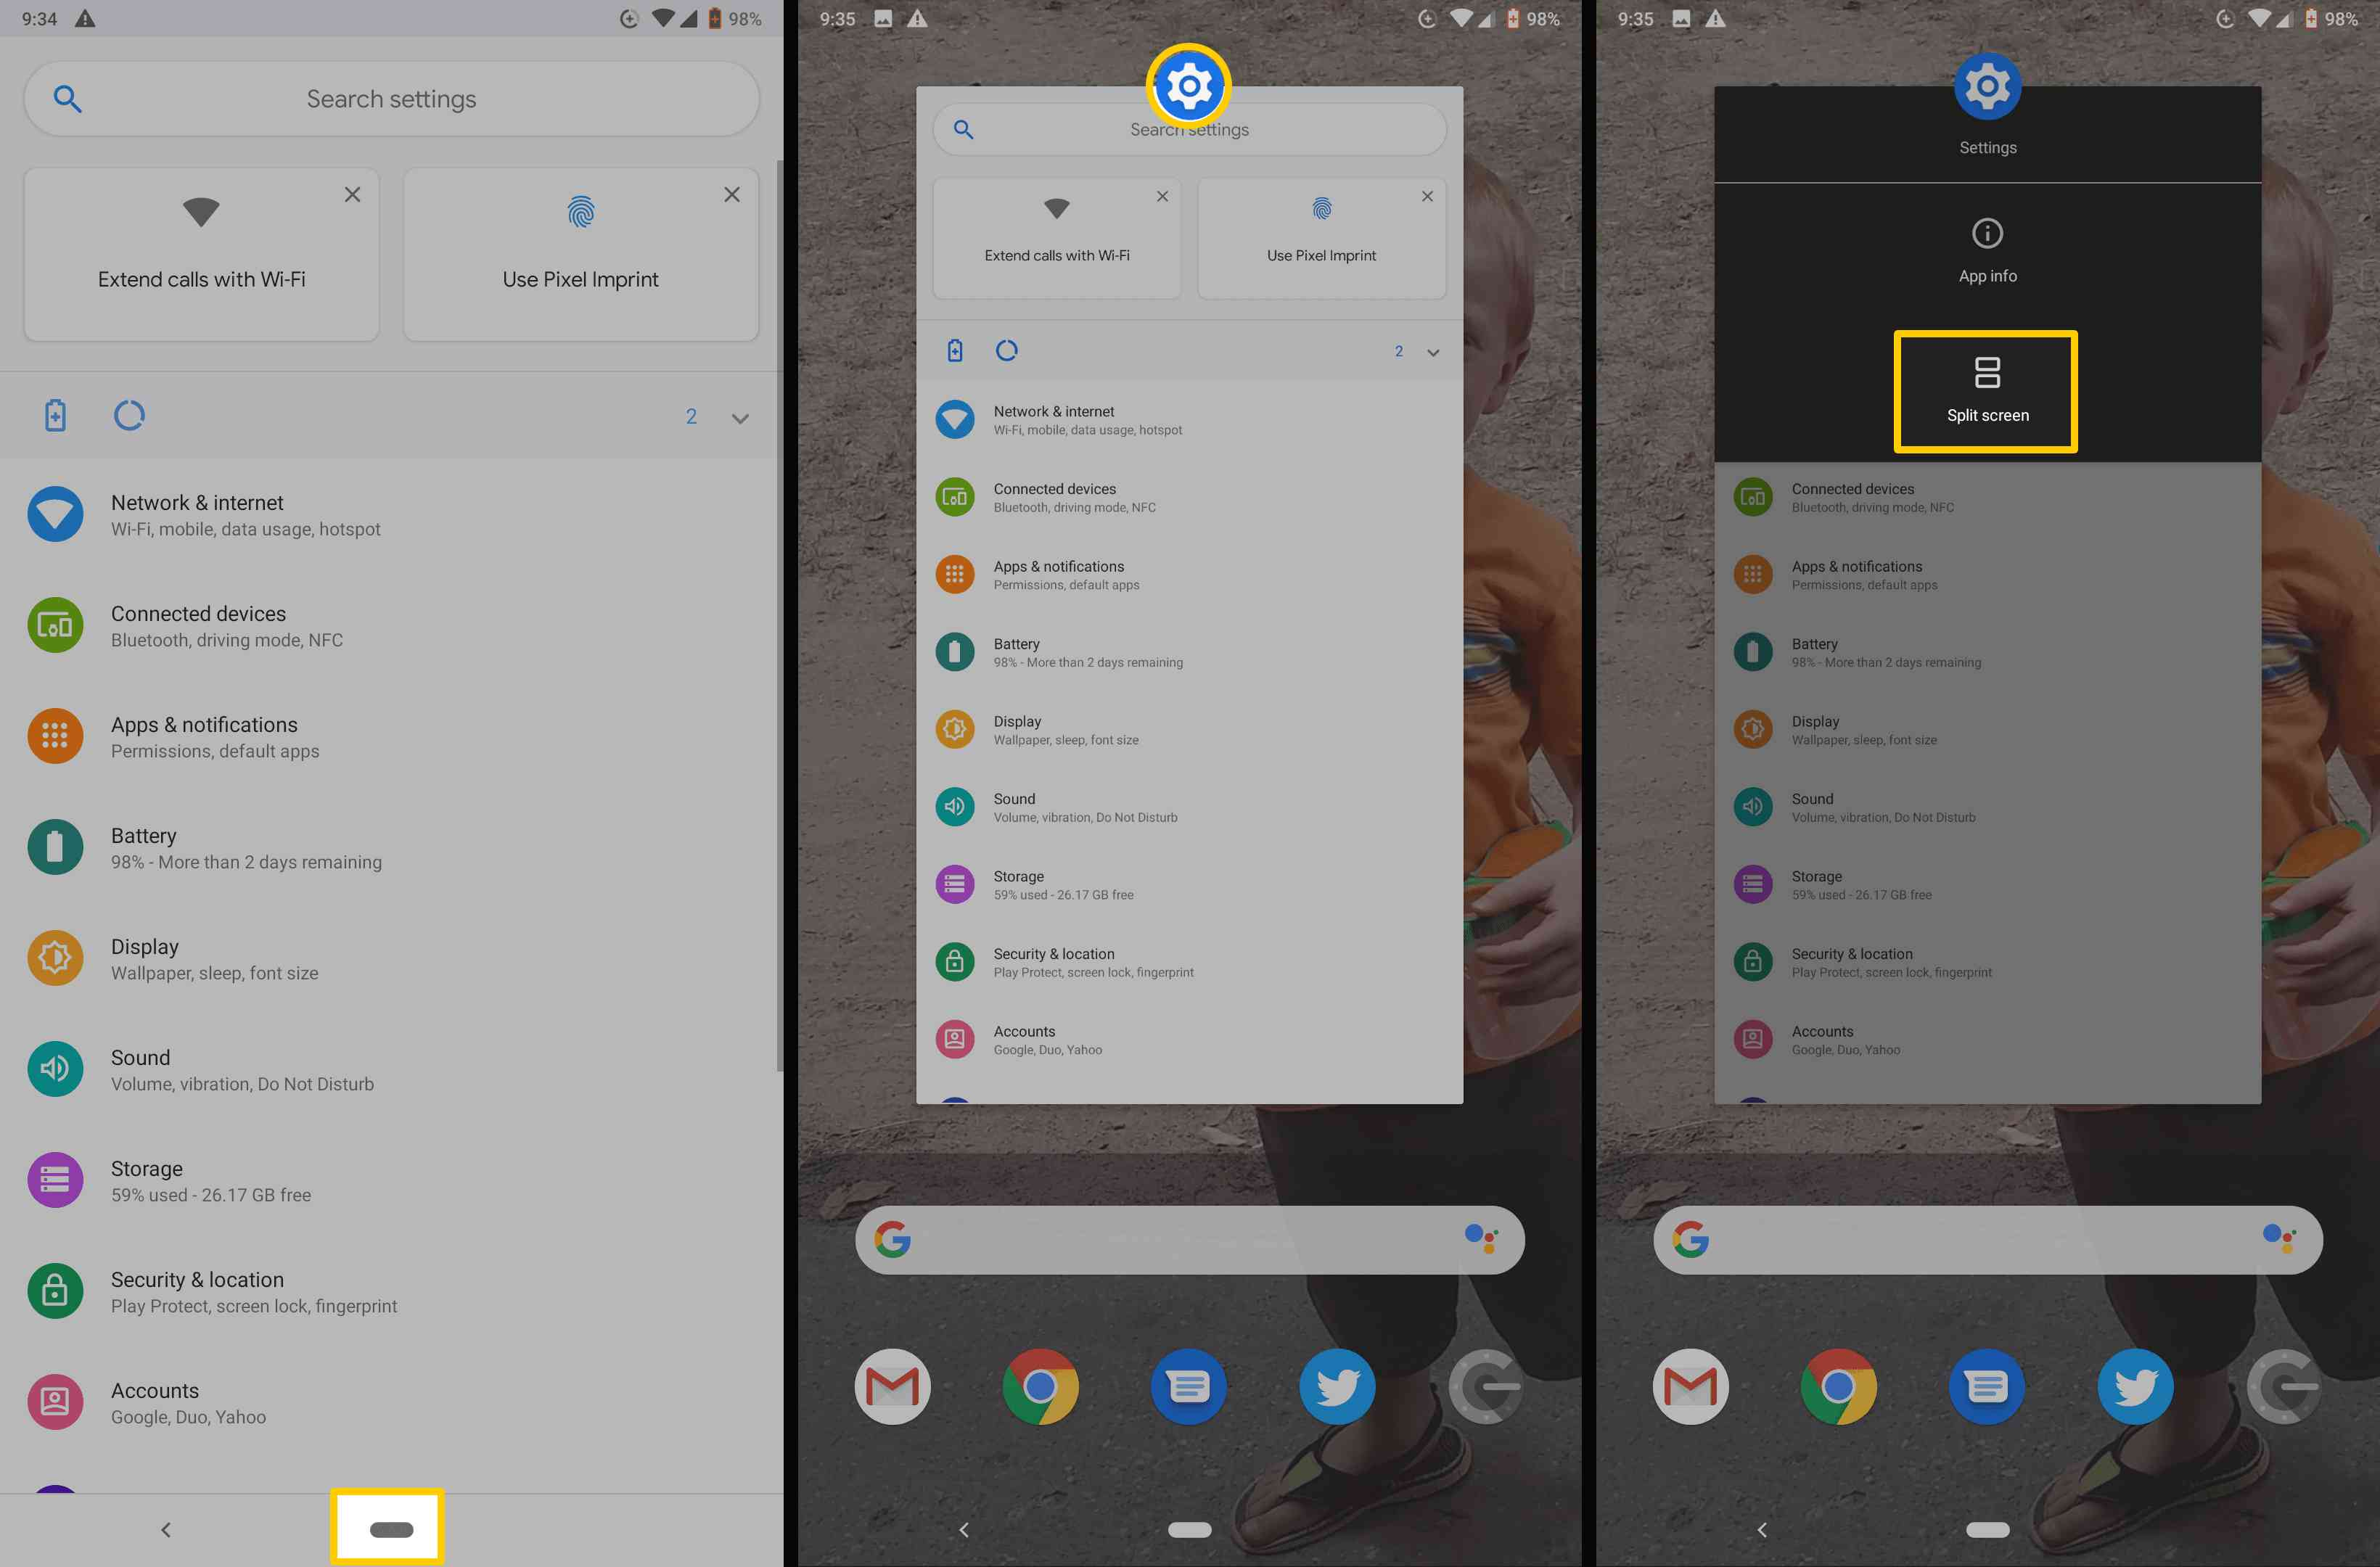 Screenshots showing how to get to the Split Screen option in stock Android.